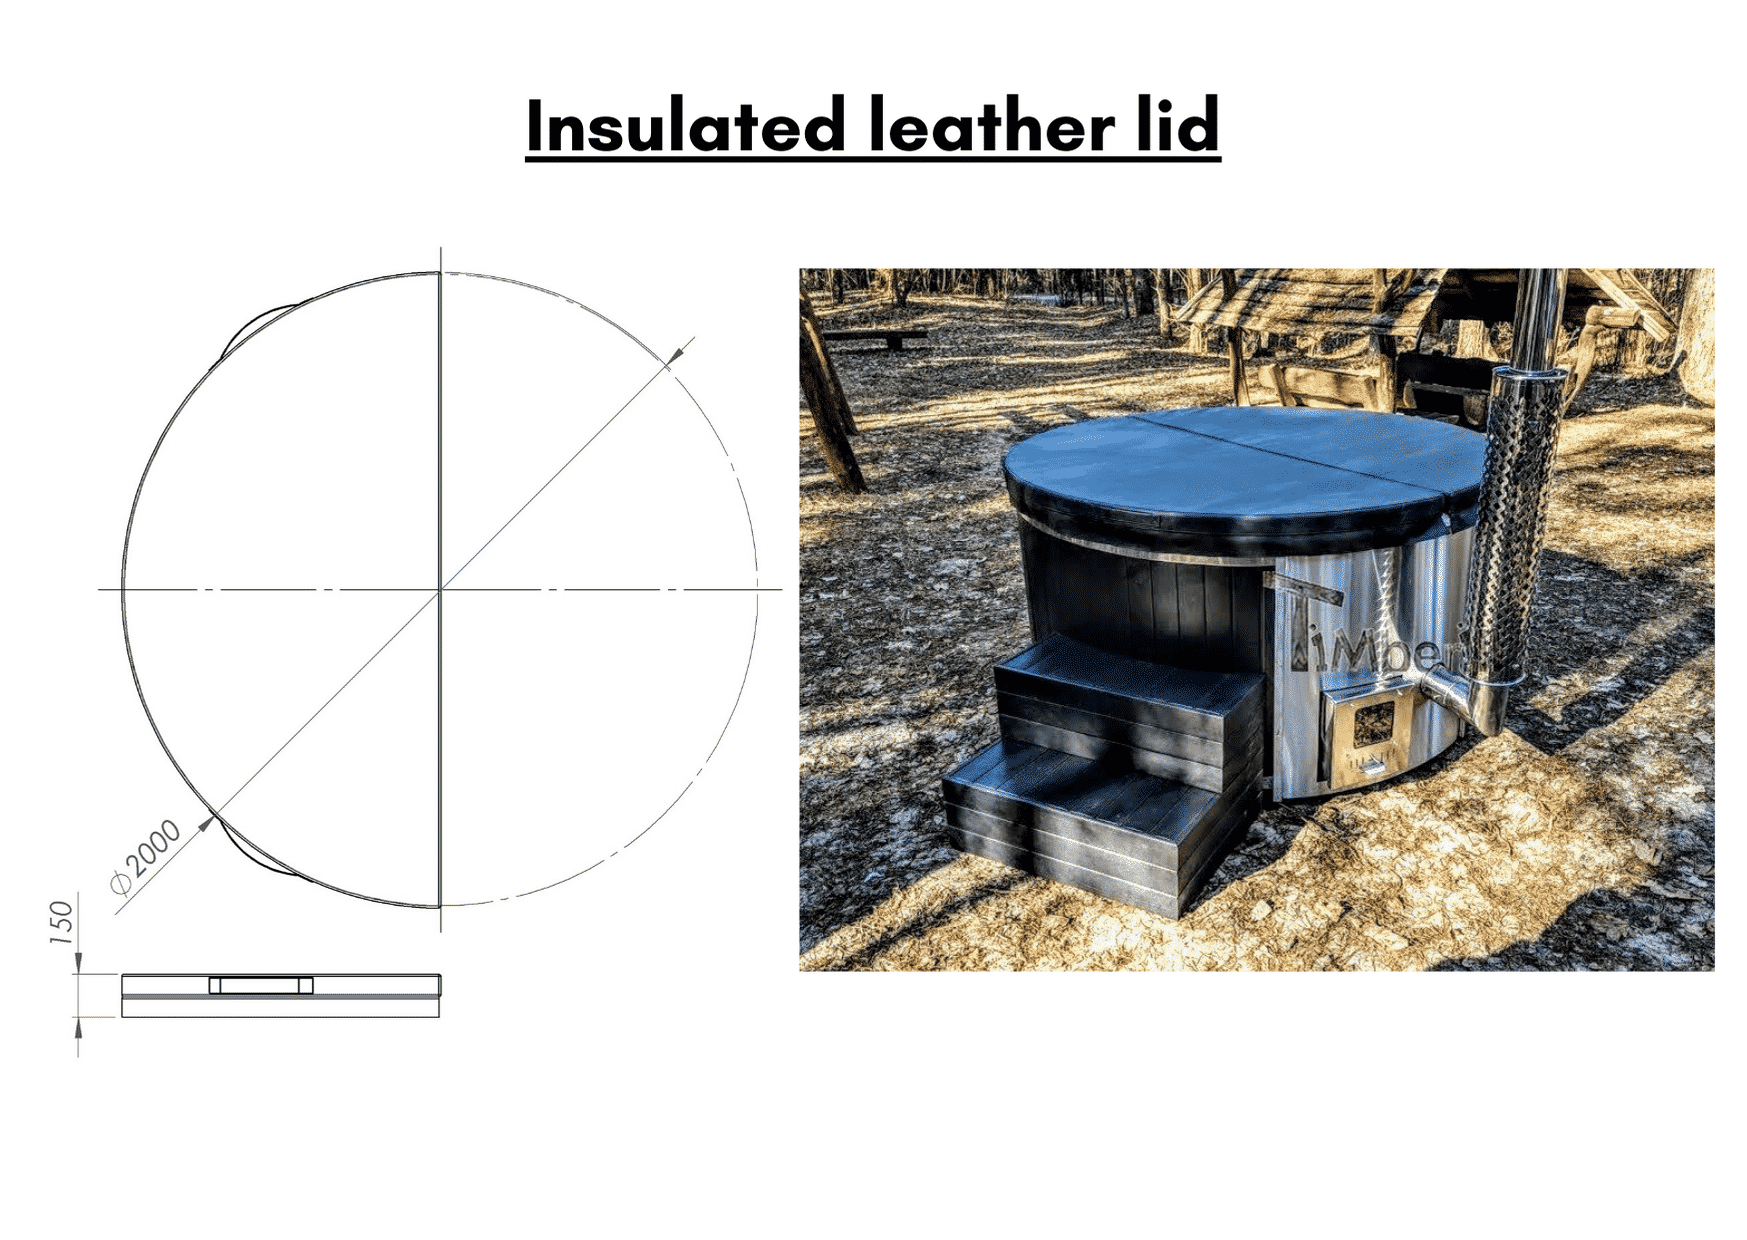 Black Insulated leather lid Outdoor whirlpool hot tub with Smart pellet stove 3